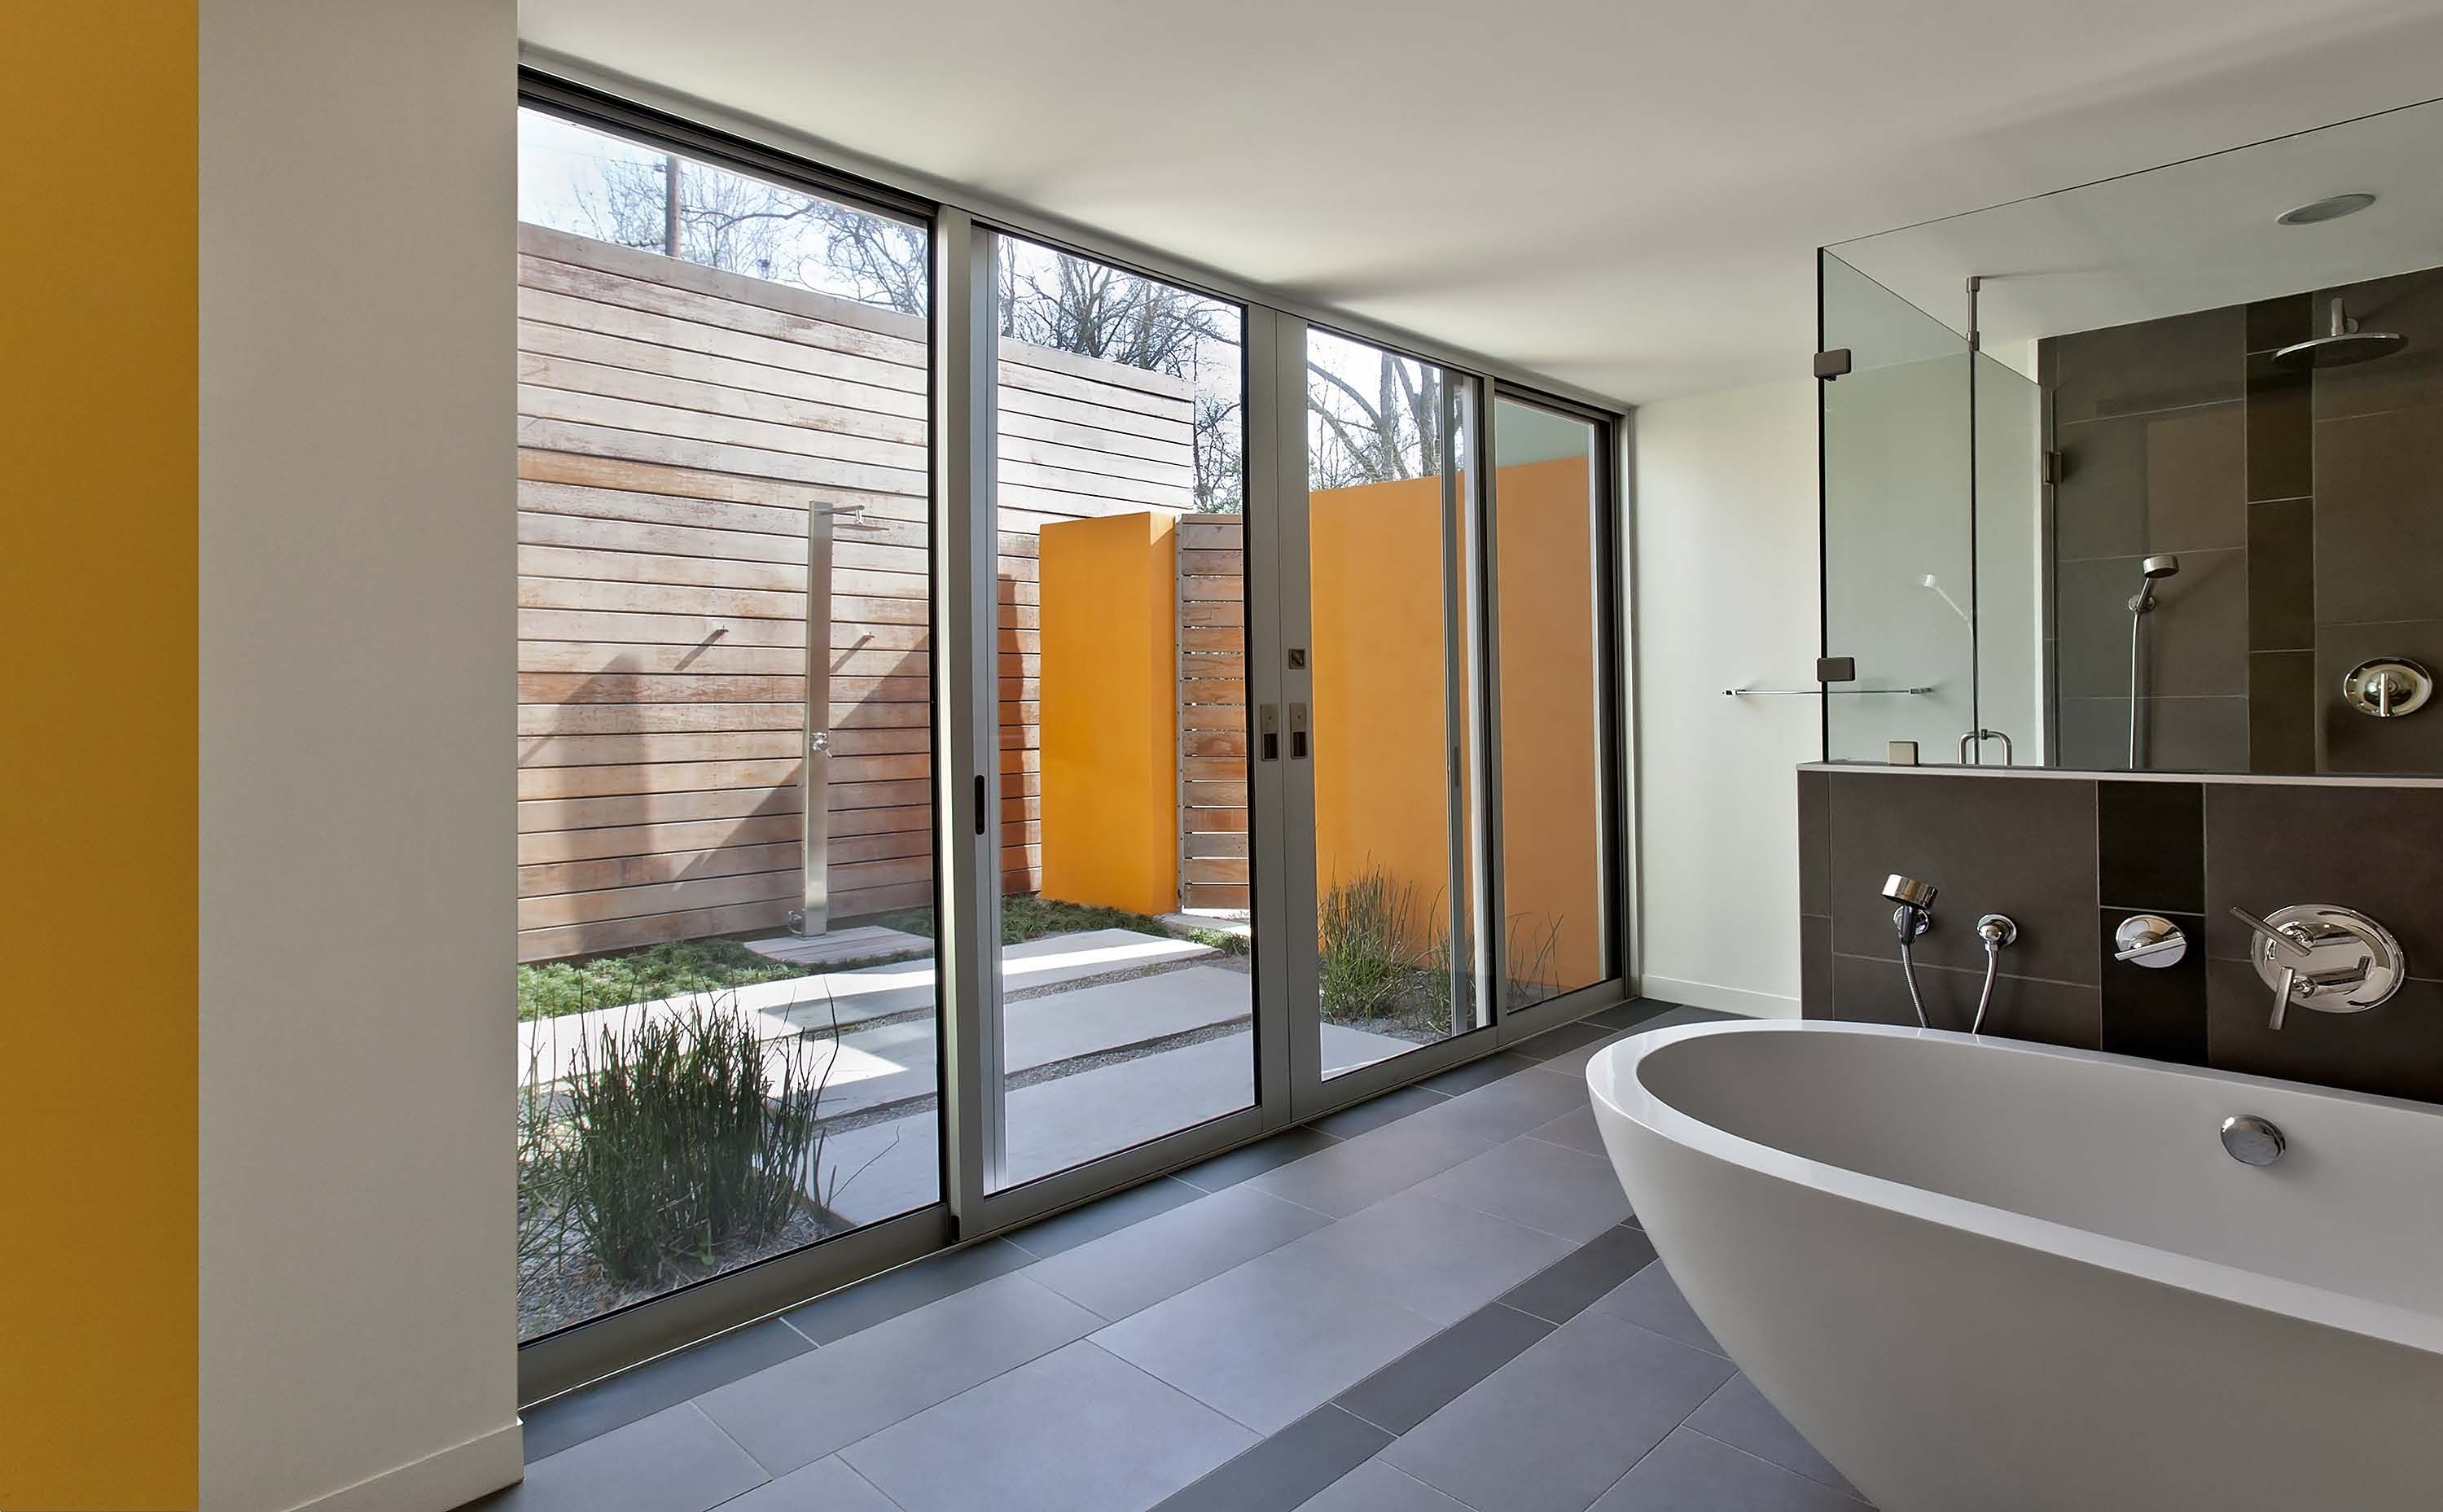 wood wall sliding door with concrete steps with grass in between i rh pinterest com